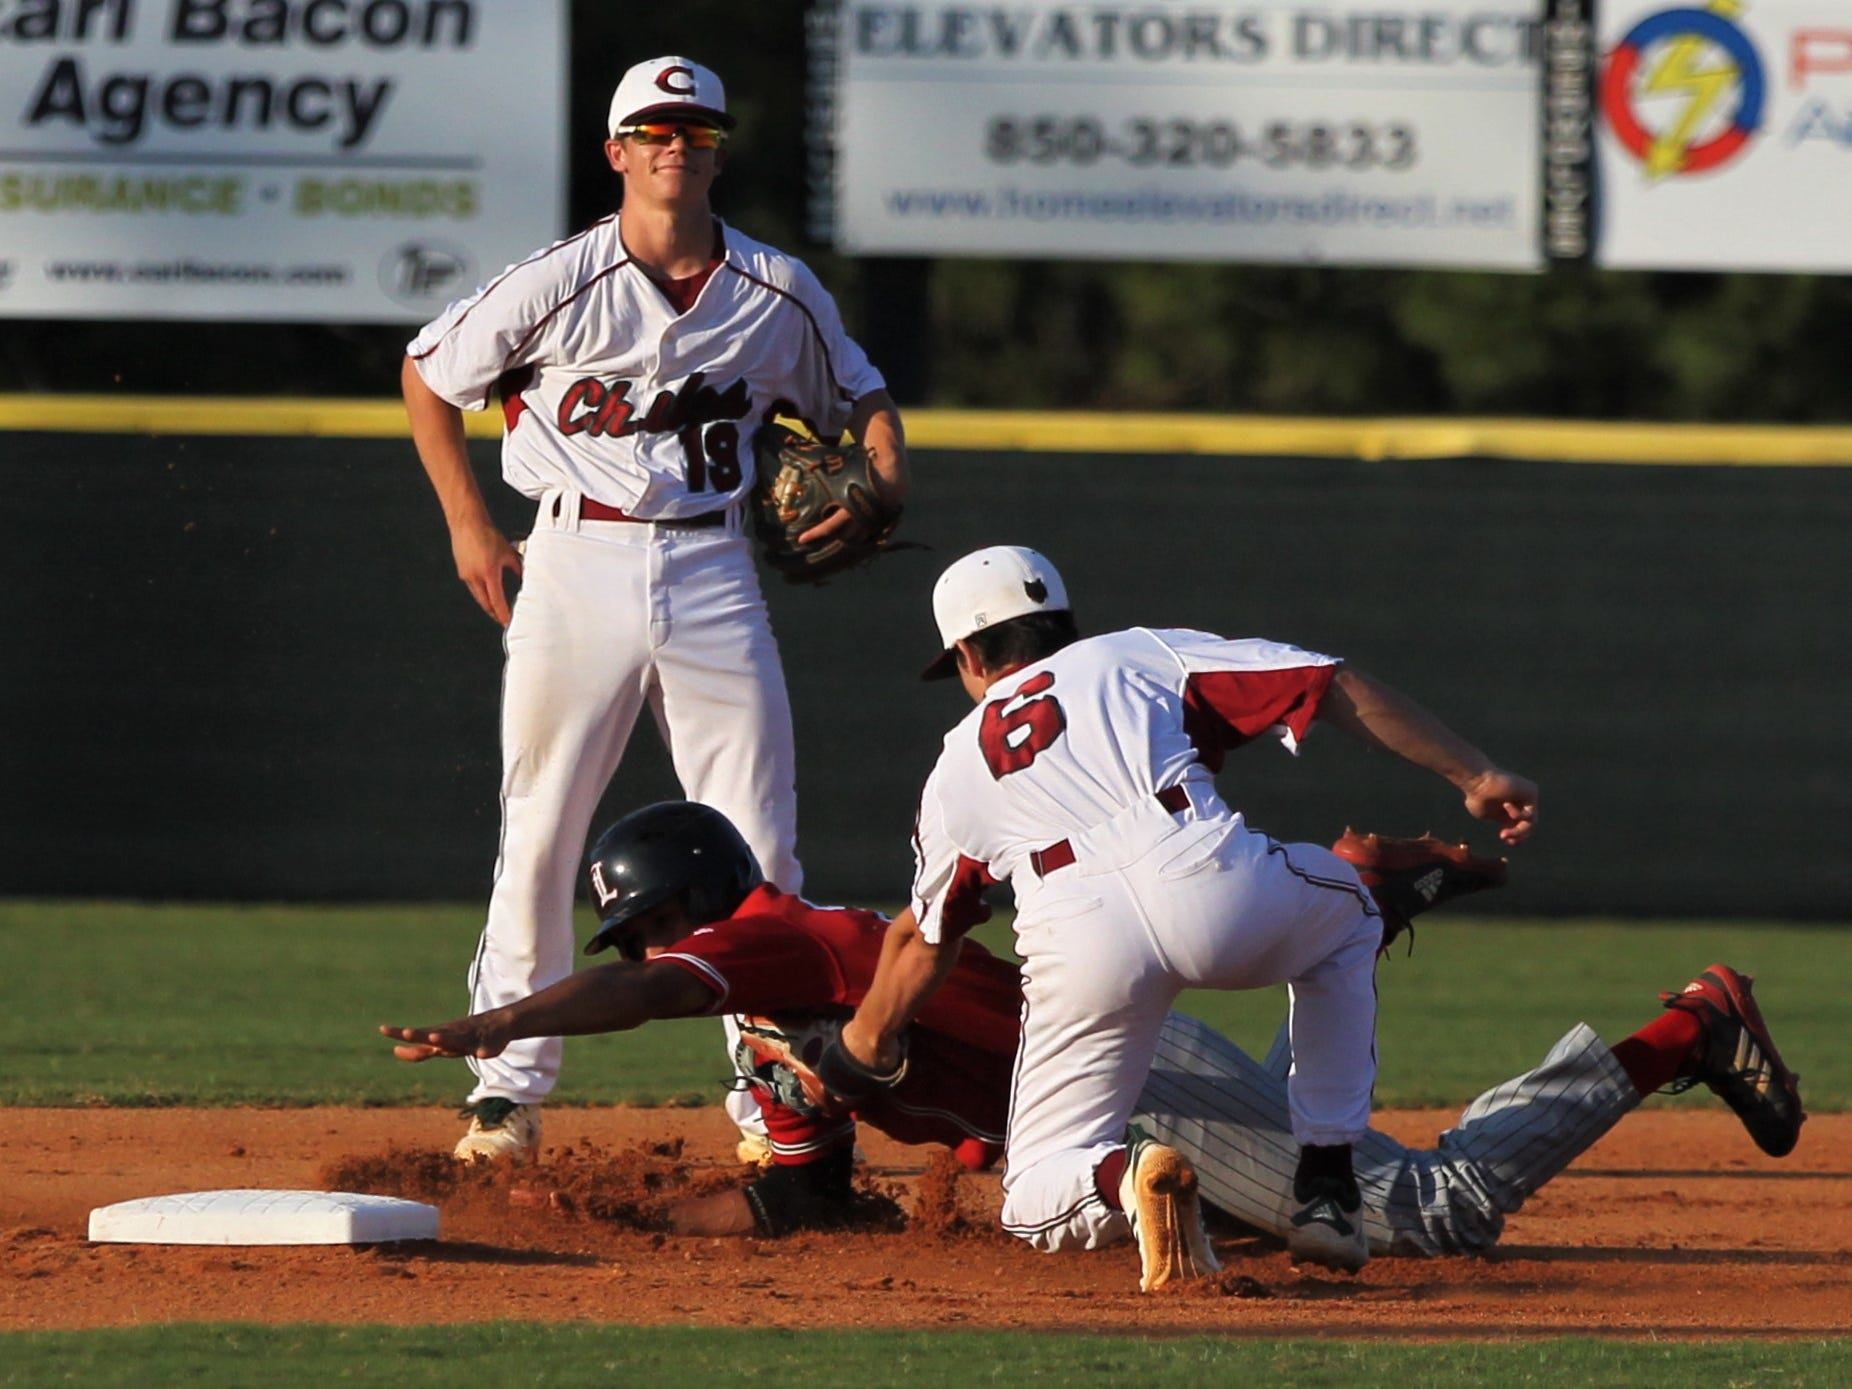 Leon senior Victor Castillo is tagged out while stealing by Chiles freshman Grant Gallagher as Chiles beat Leon 10-6 during a District 2-8A semifinal on May 7, 2019.